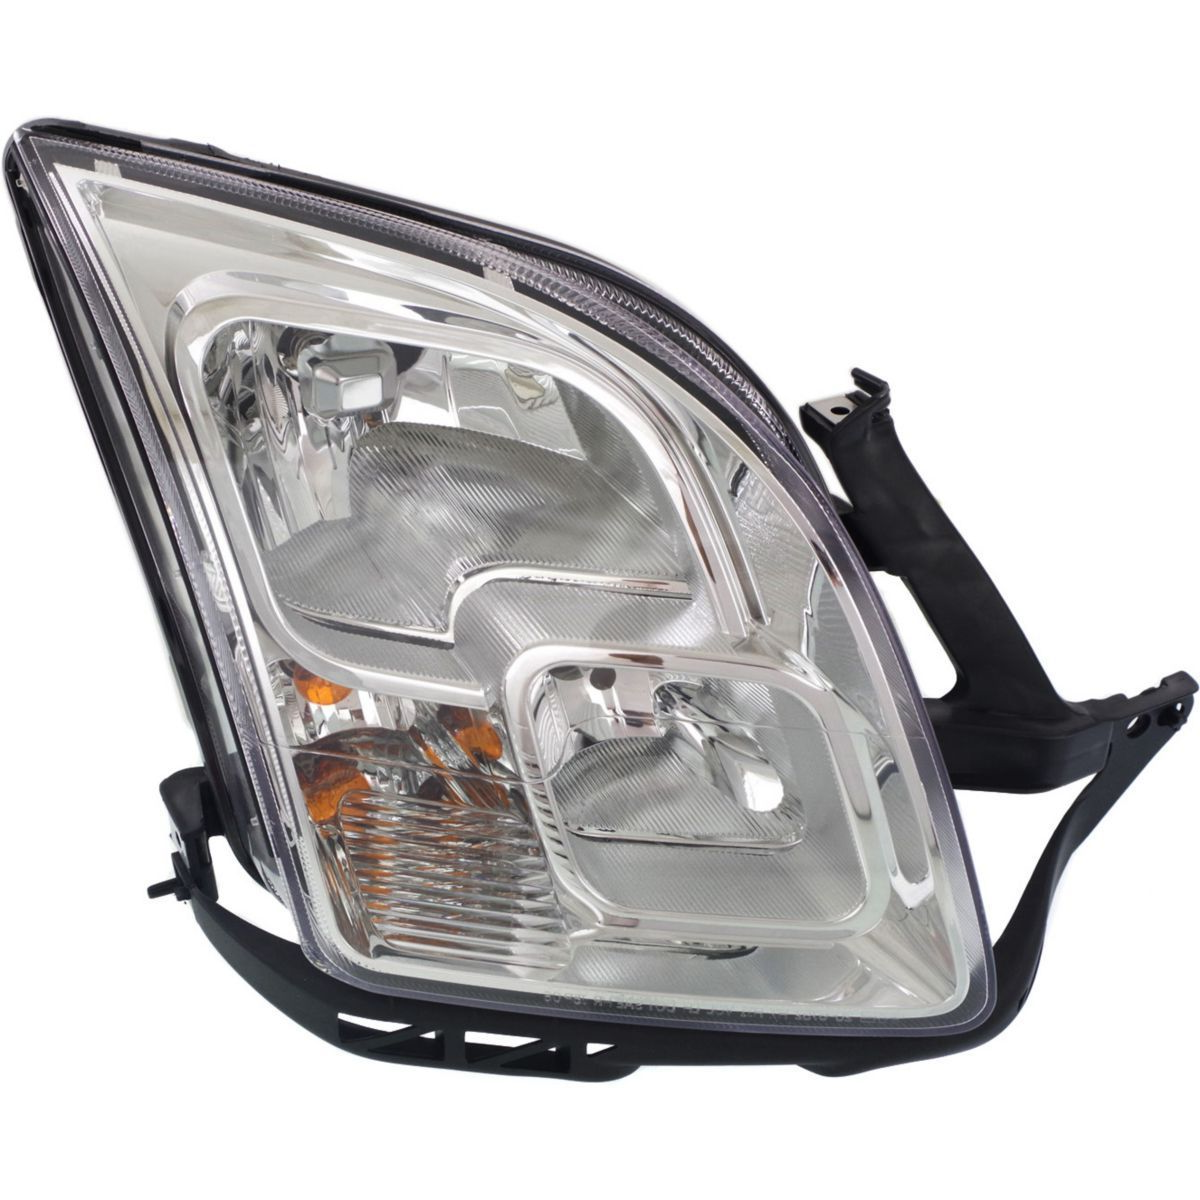 Ford Fusion 2006 2007 2008 2009 right passenger headlight